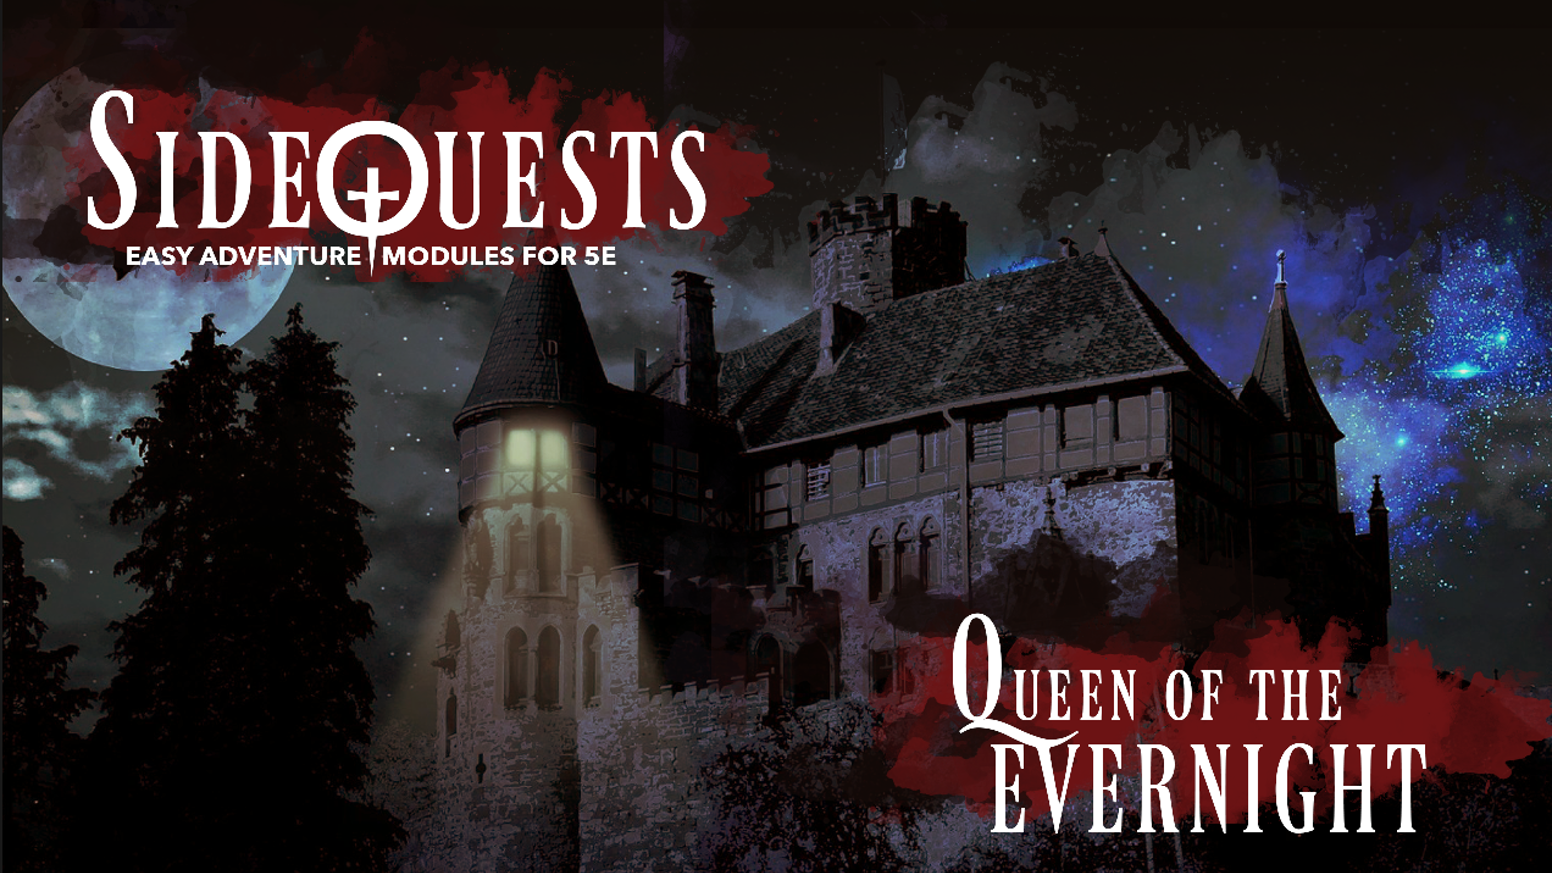 A brand new SideQuests Adventure for Fifth Edition Dungeons & Dragons, with elements of horror, mystery, and dark fantasy.